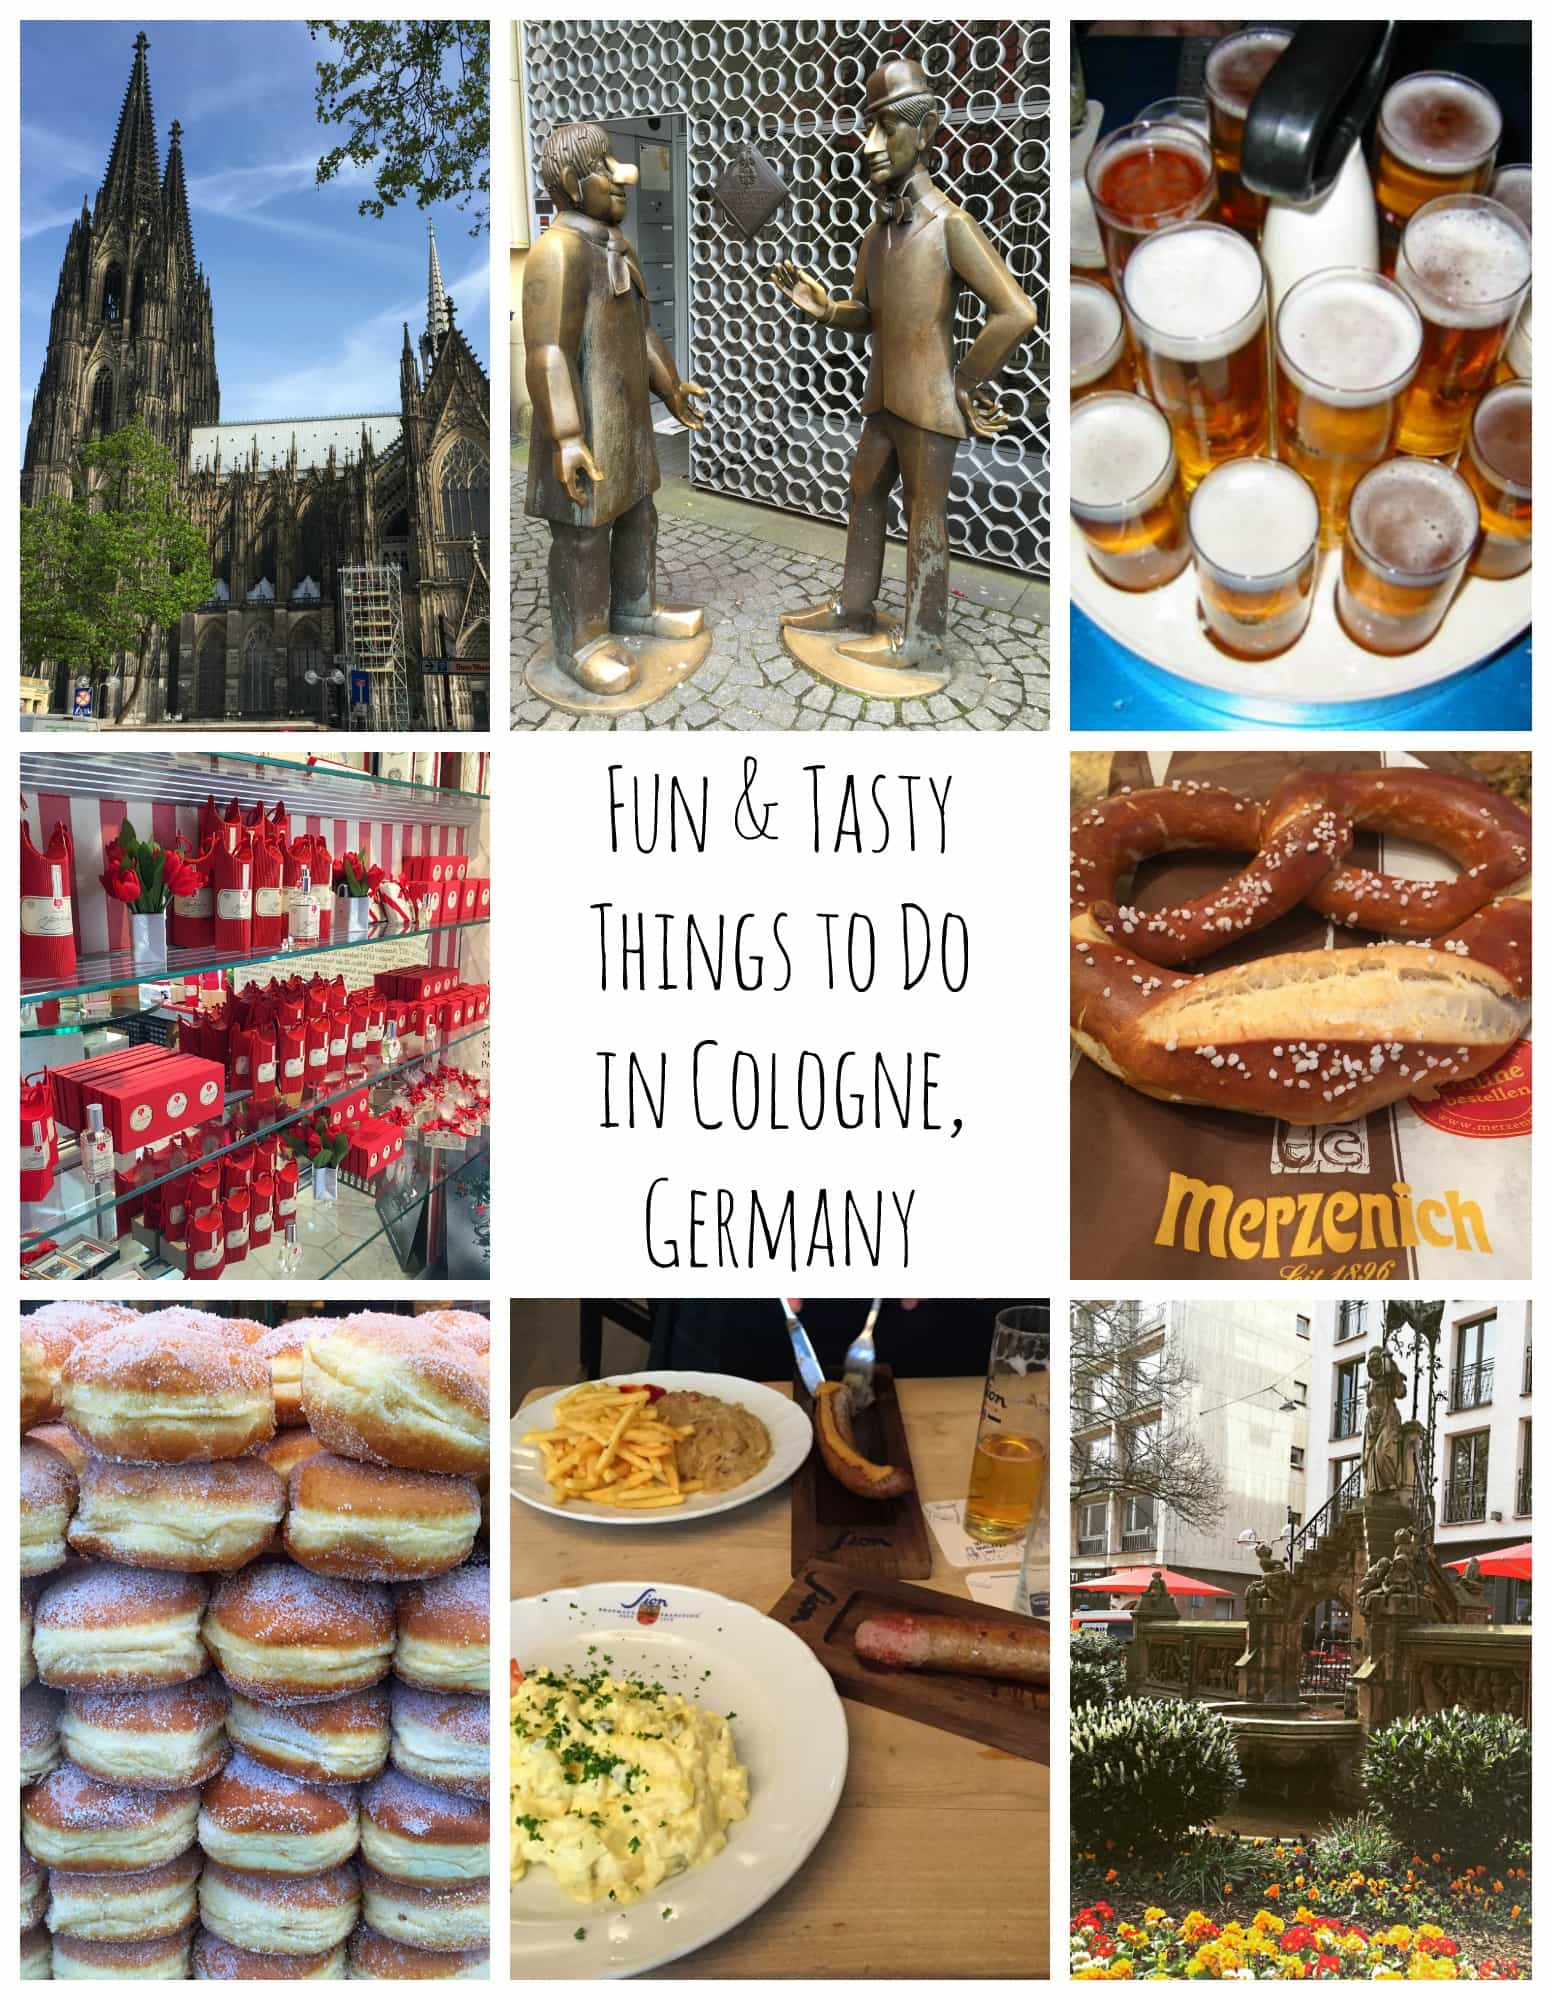 Fun & Tasty Things To Do in Cologne, Germany from TravelMamas.com ~ Best Blog Posts